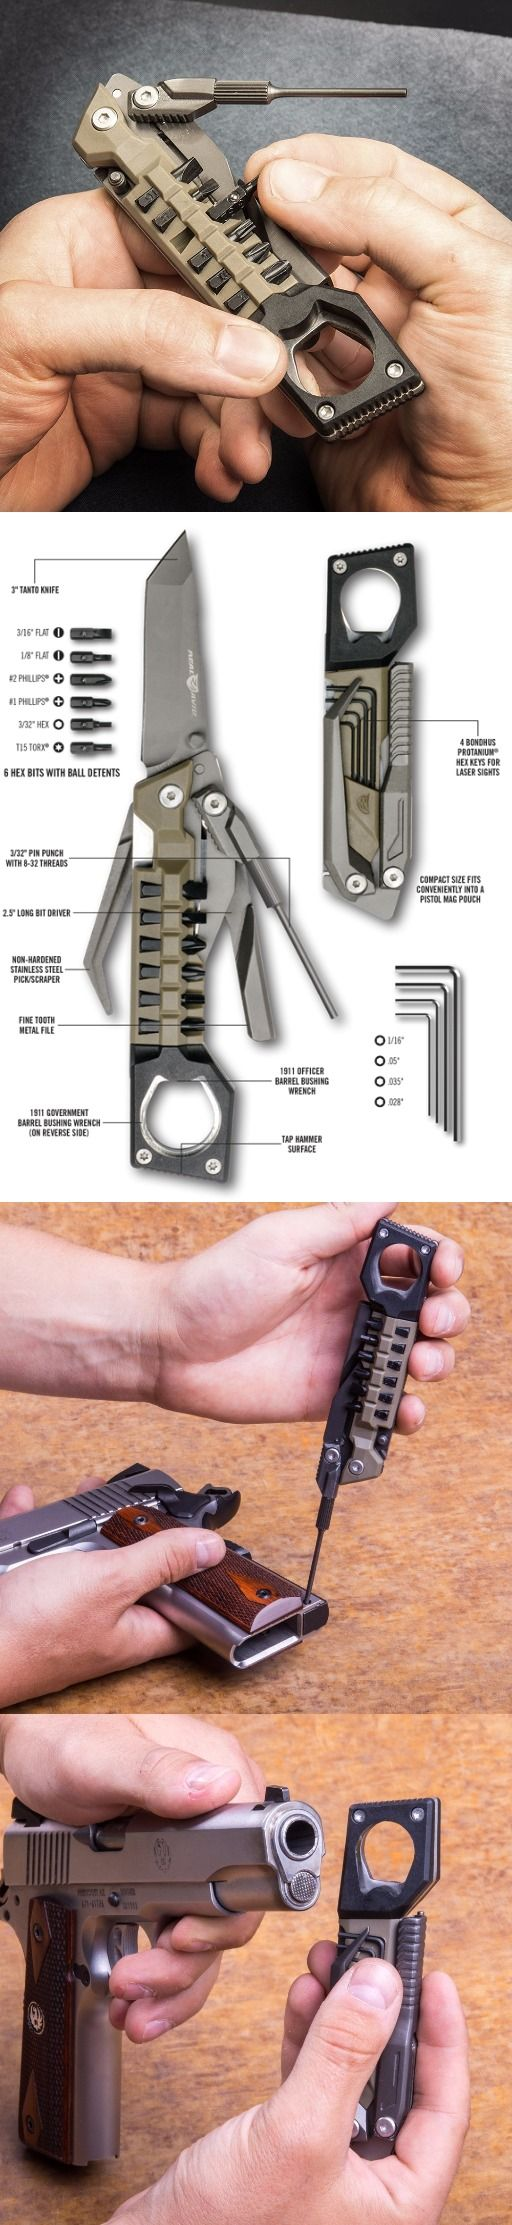 Real Avid The Pistol Tool. The Number of Tasks the Hand Gun Pistol Tool Can Handle is Astounding: Mounting Accessories, Field Disassembly, Adjusting Laser Sights, and Changing Grips are Only a Few Things This Tool Can Do.